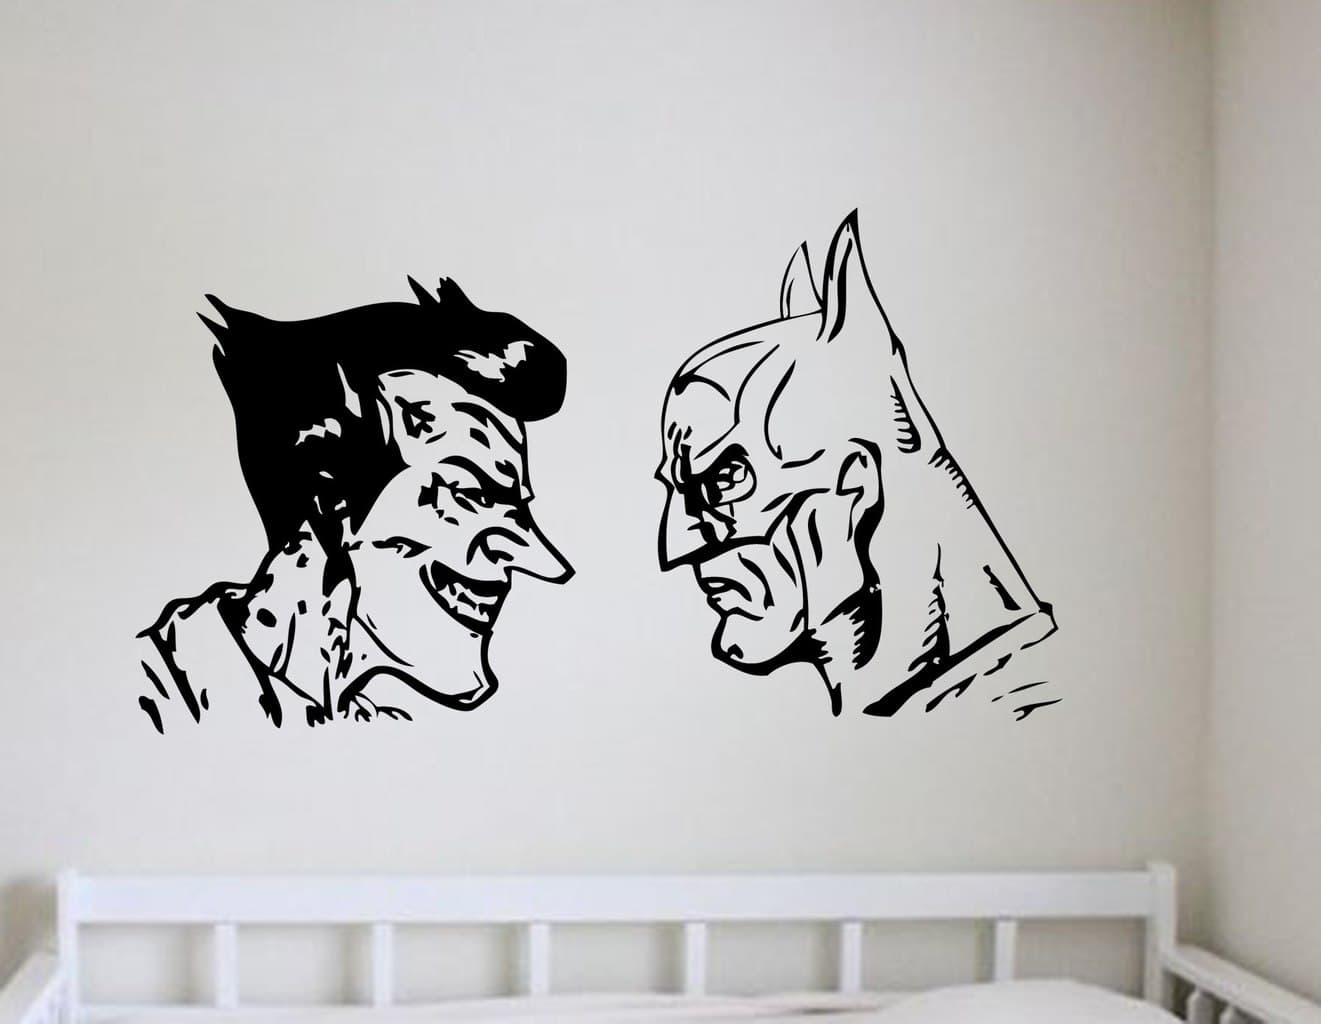 Batman and joker wall art decal wall decal wall art for Batman wall mural decal